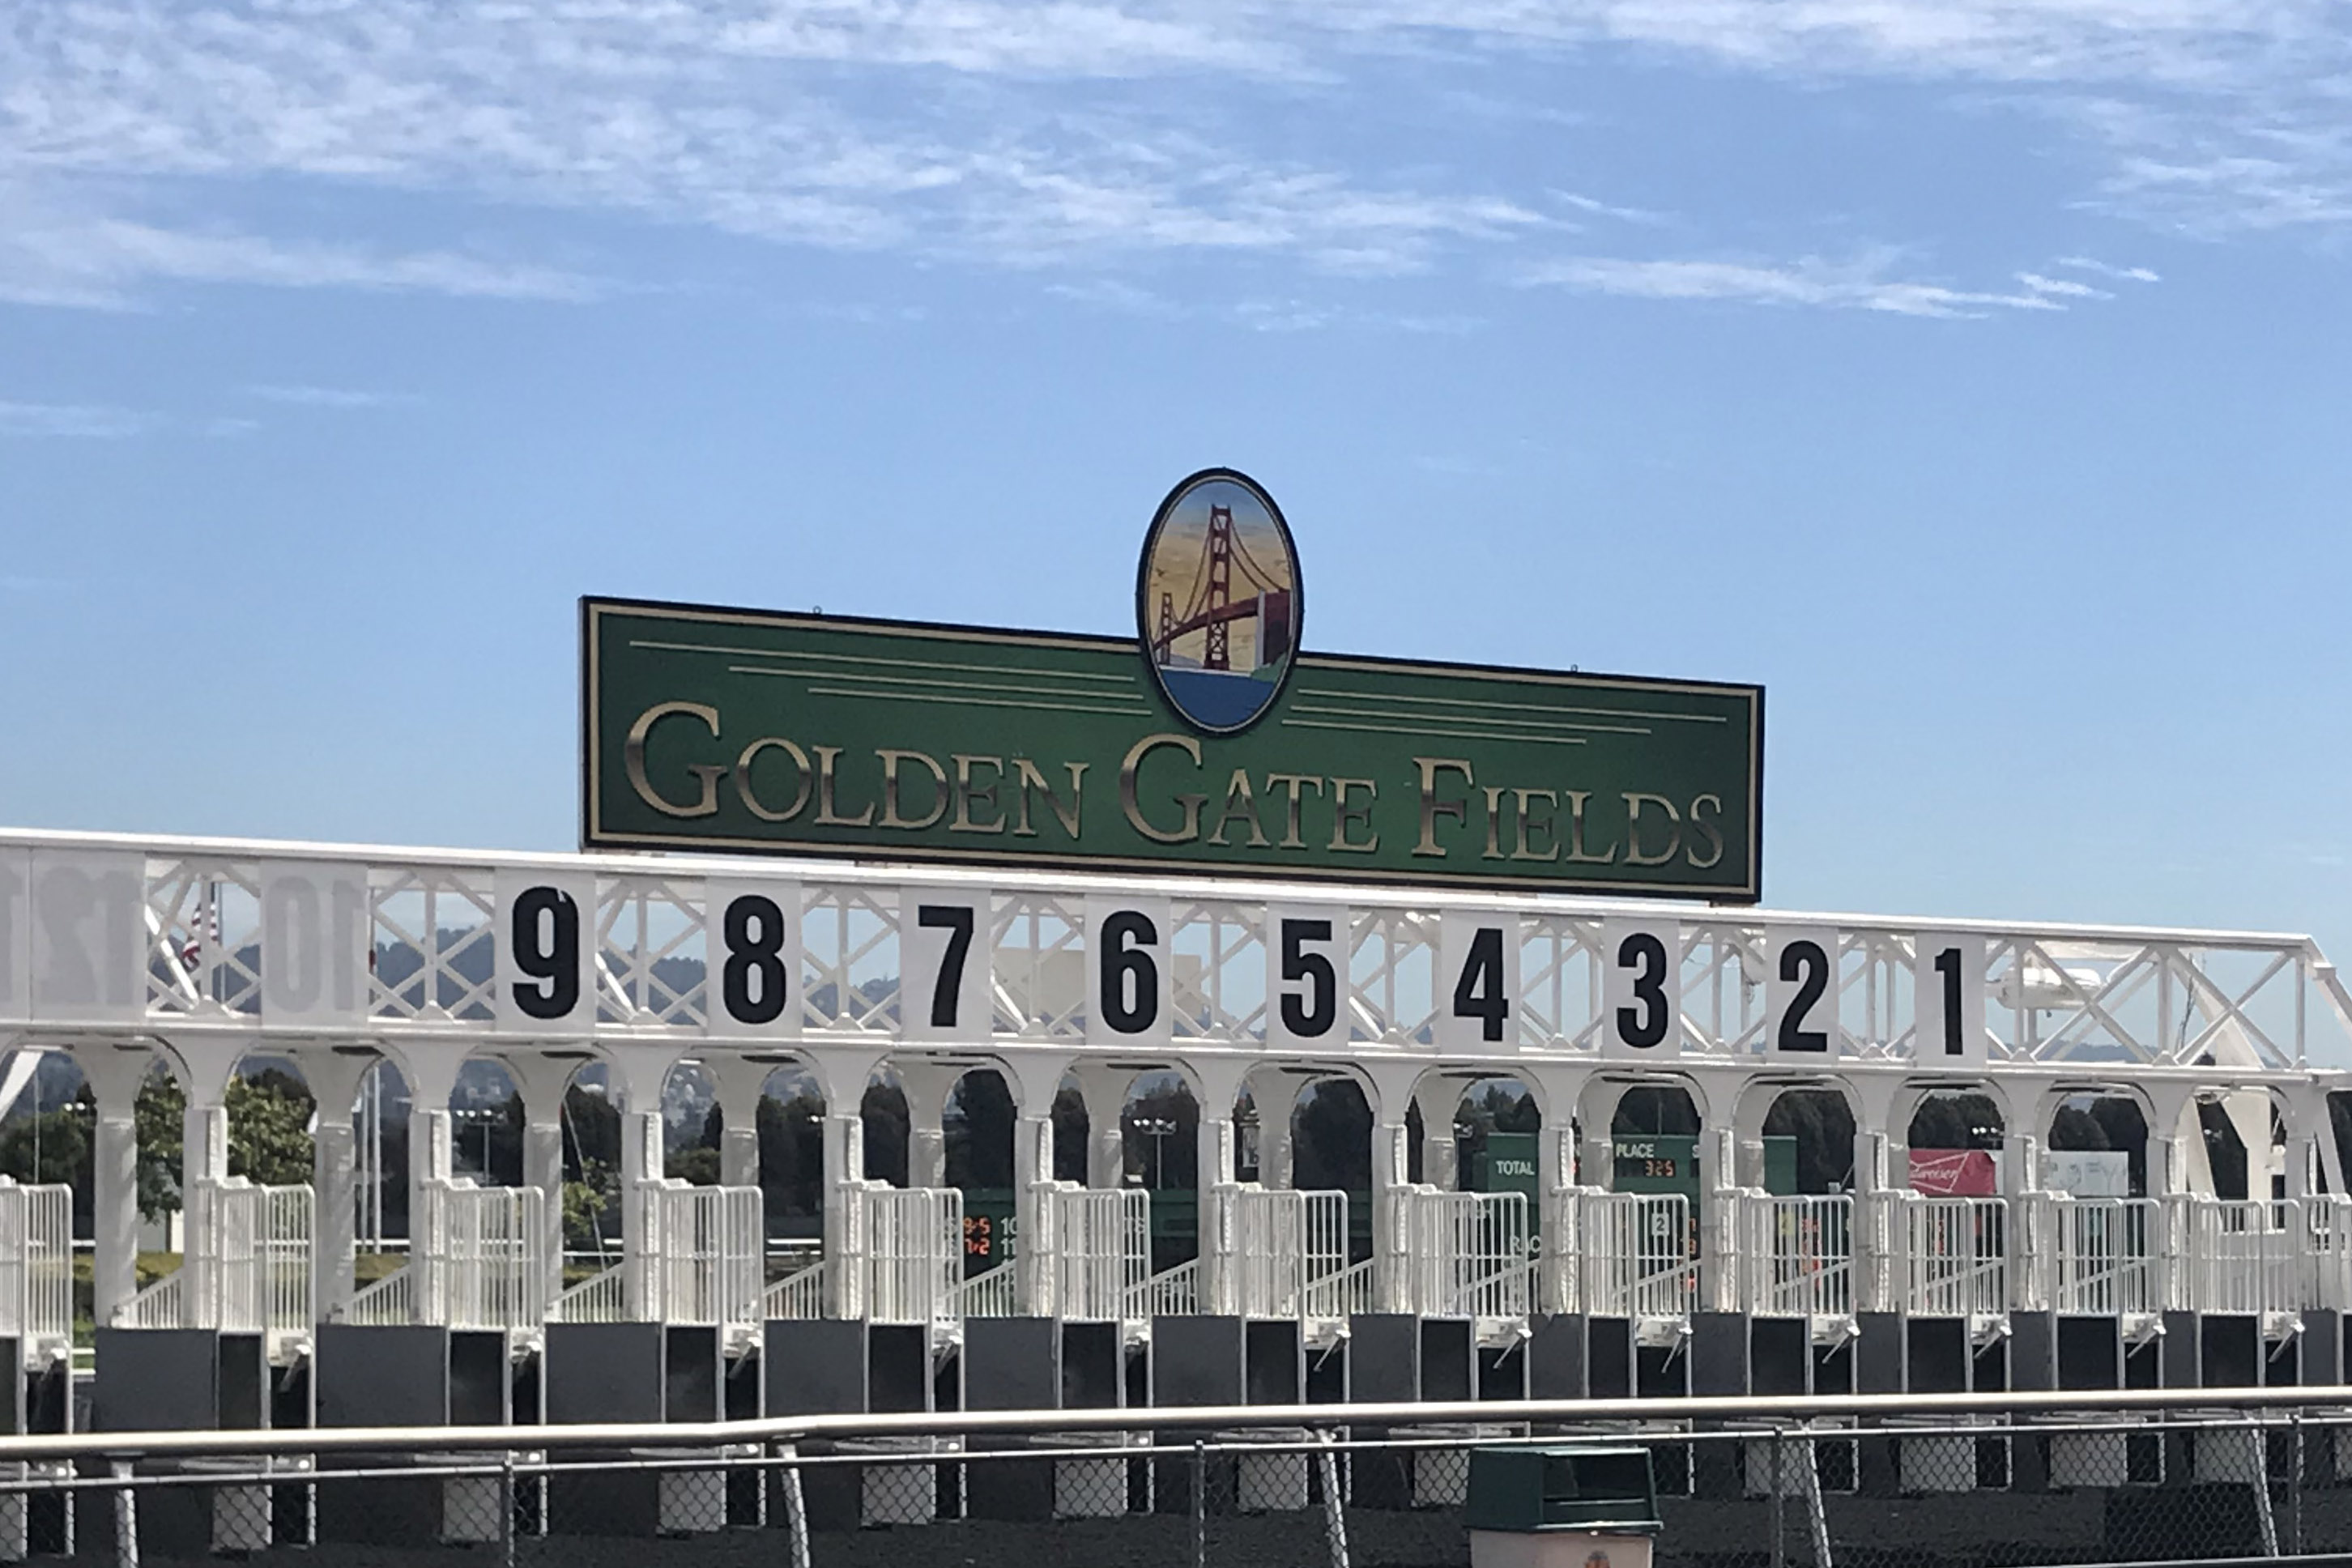 Golden Gate Fields Enables Horseplayers to Contribute to TAA via AmTote Tech